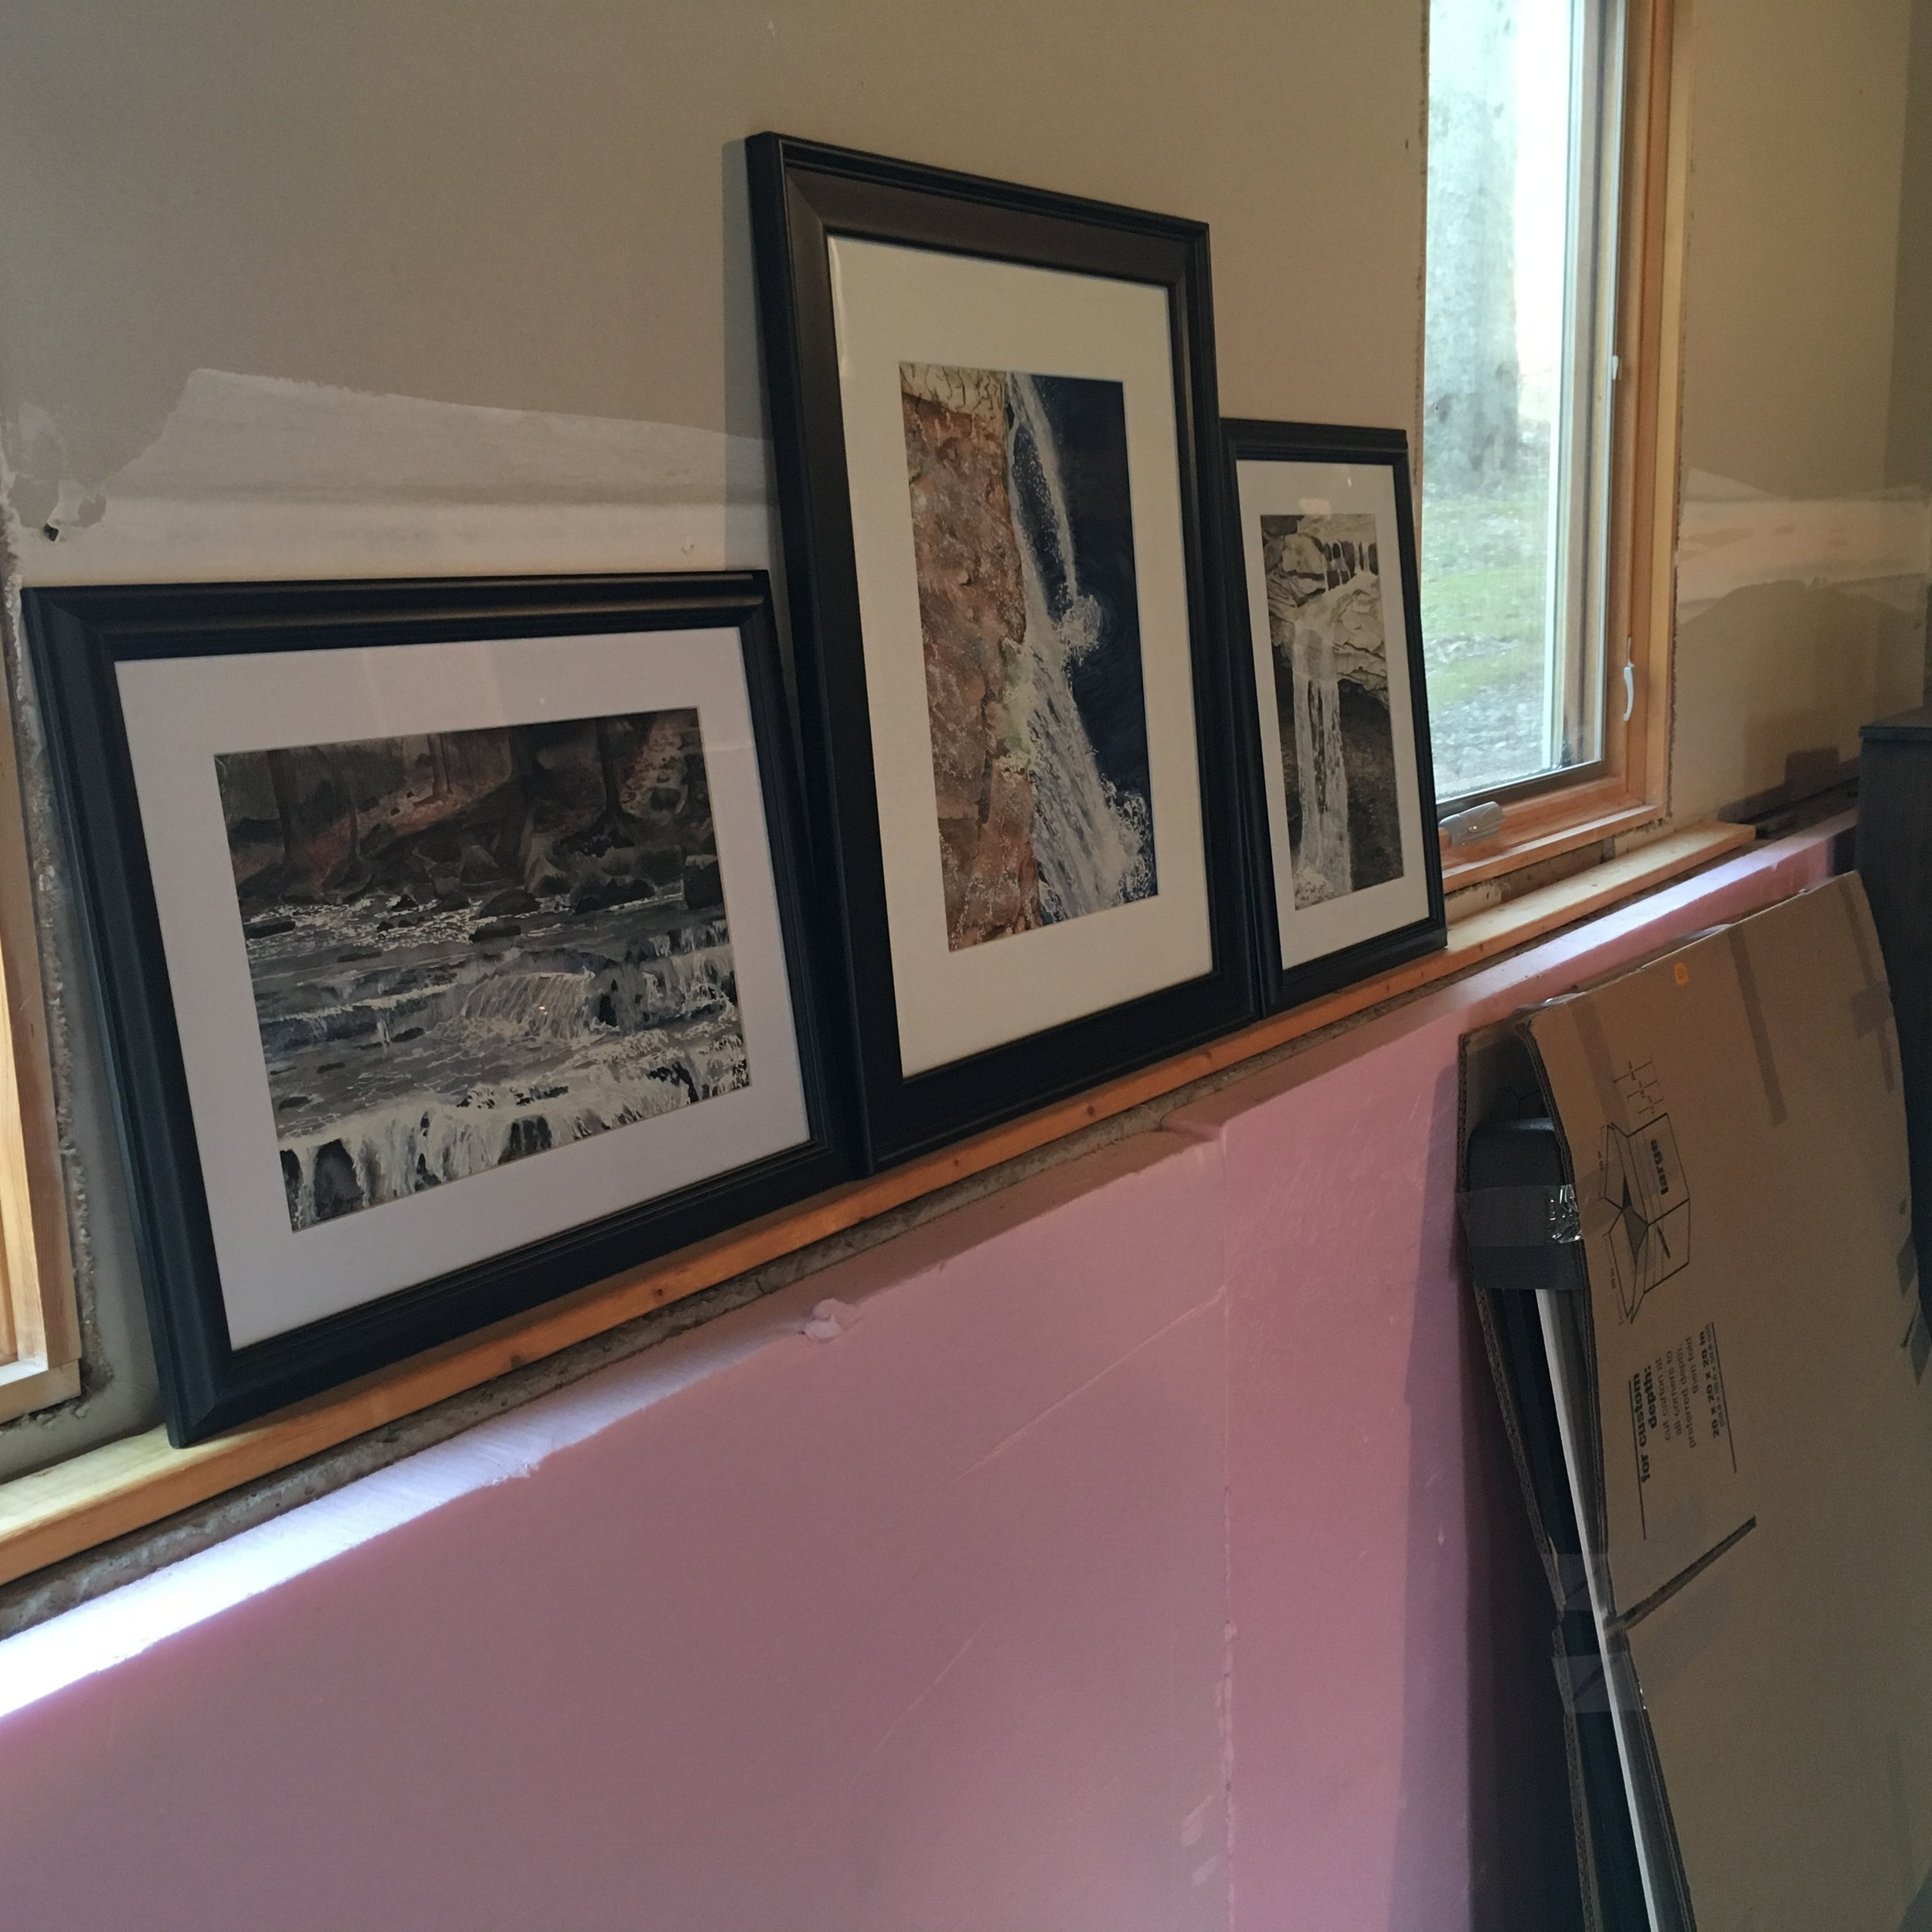 Once the drywall is finished I will have a wonderful shelf to display my paintings